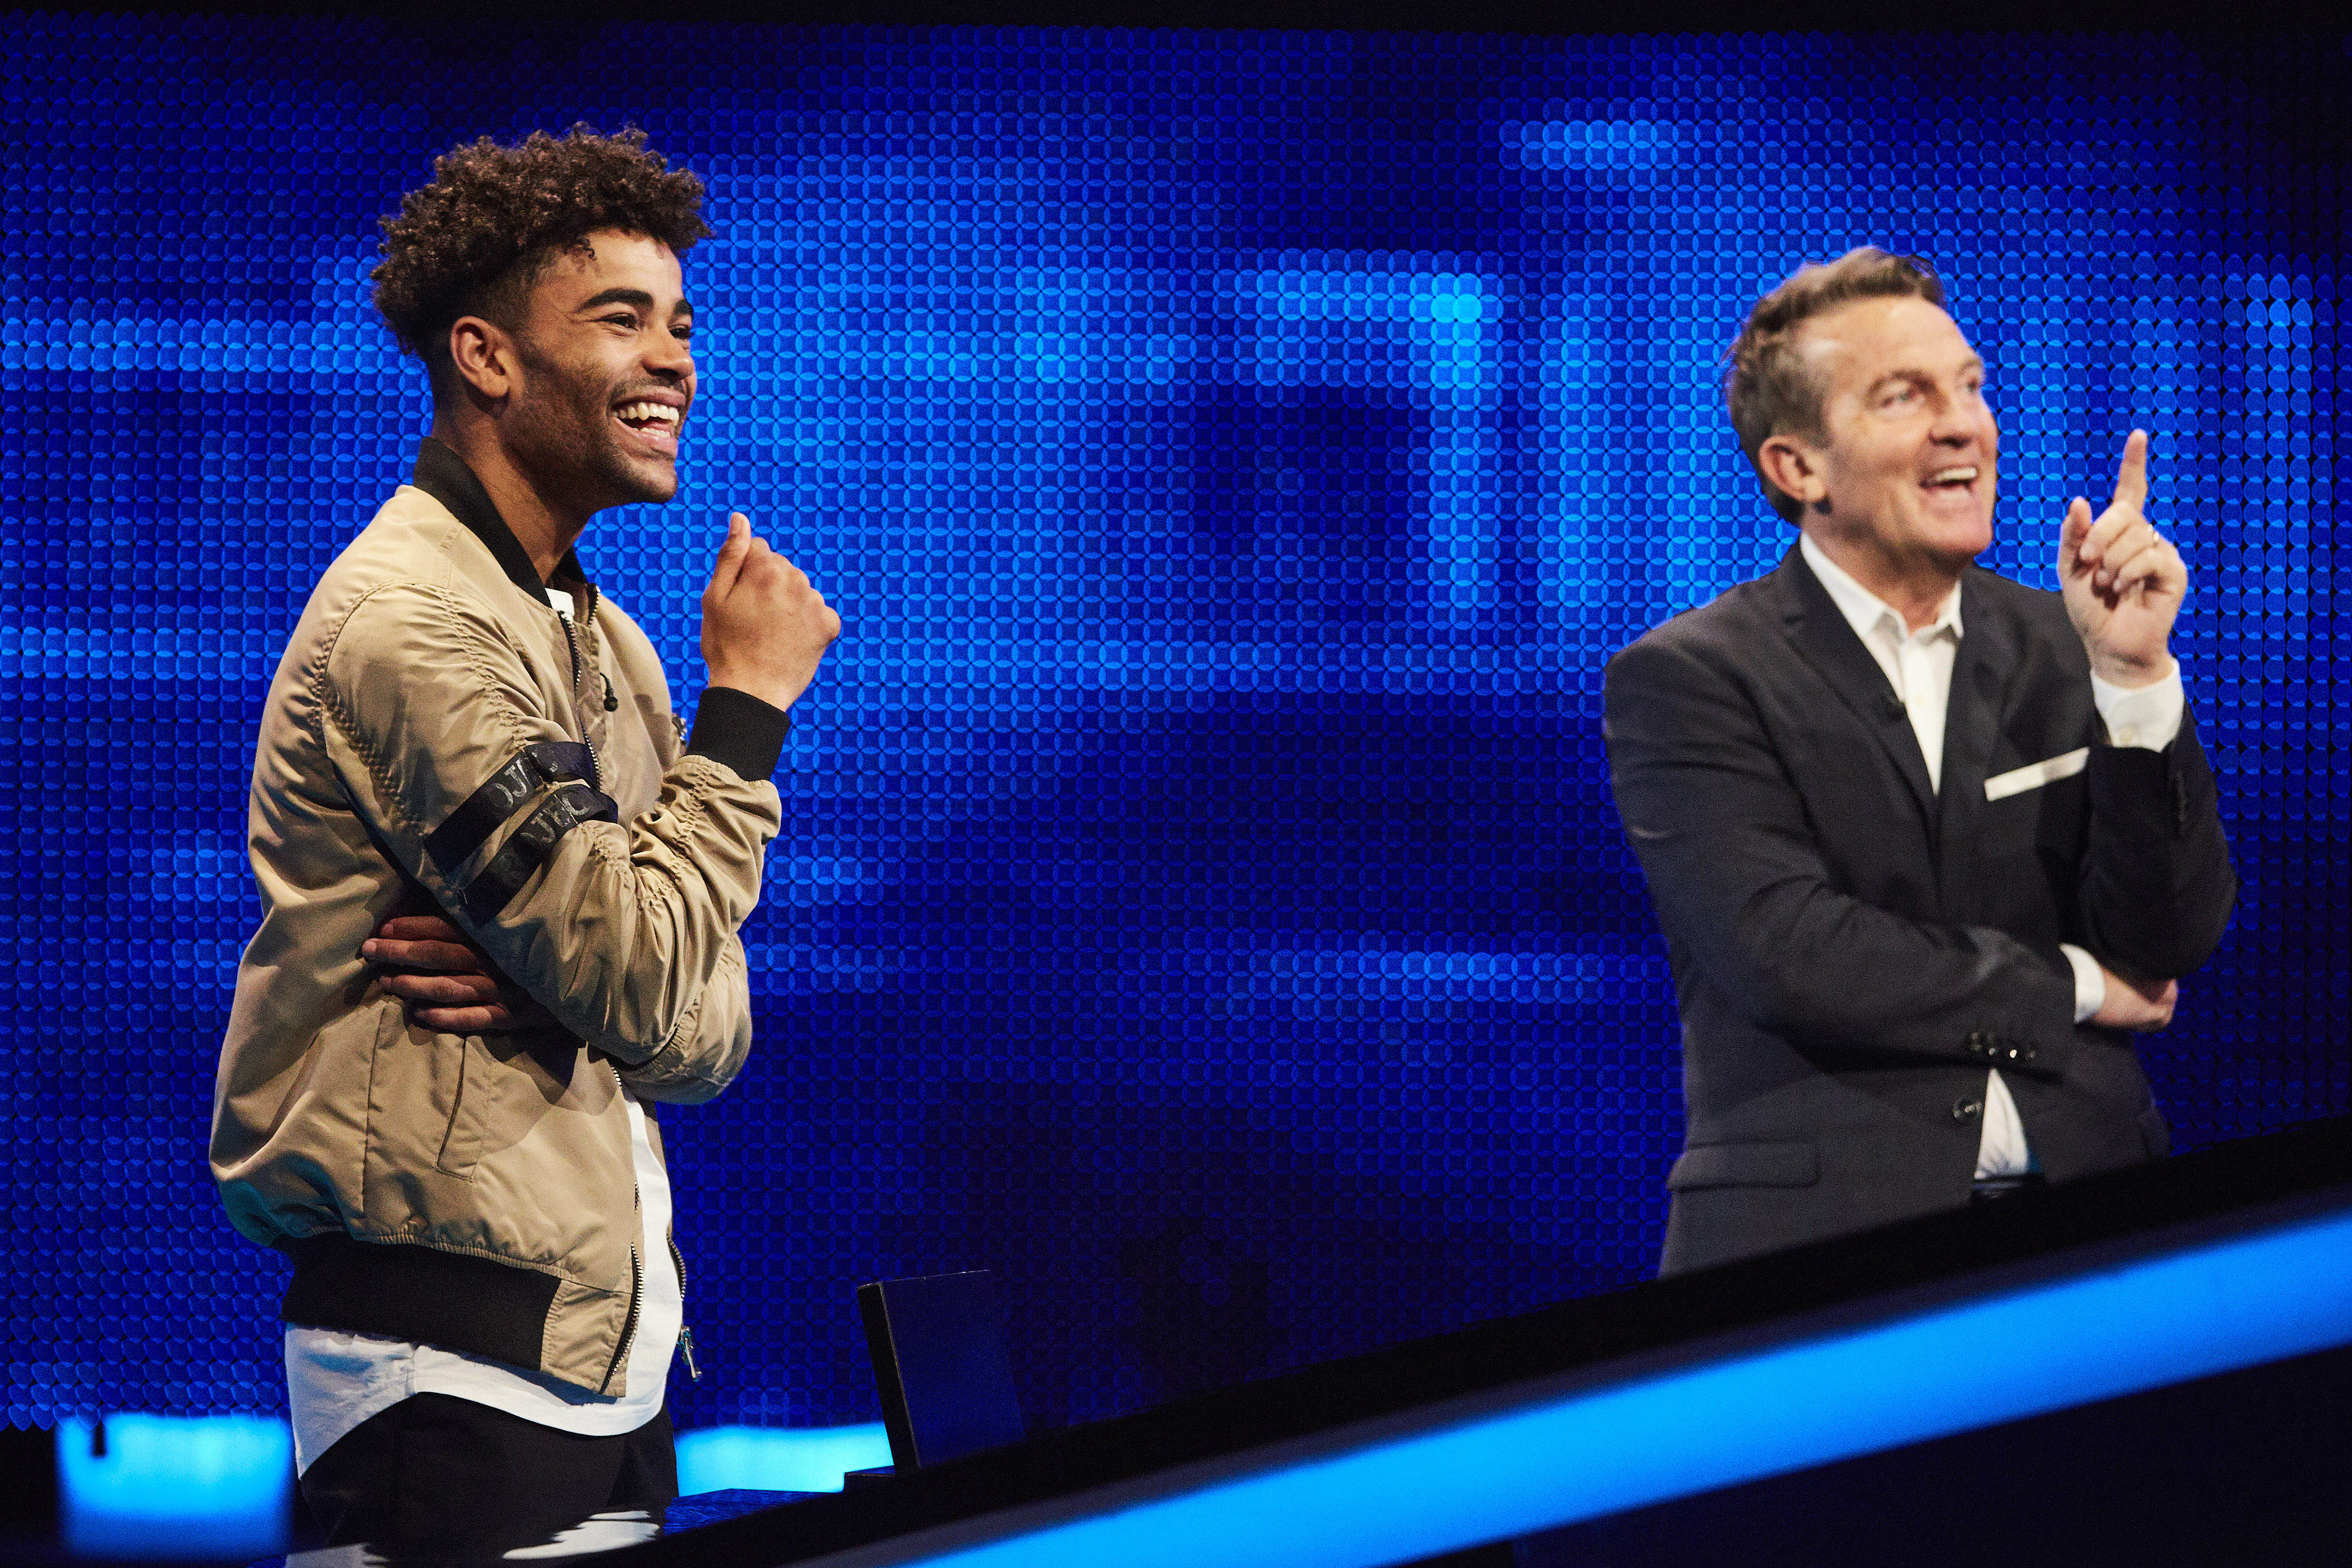 Hollyoaks star Malique reduces Bradley Walsh to tears of laughter on The Chase with his answer to 'saucy' question